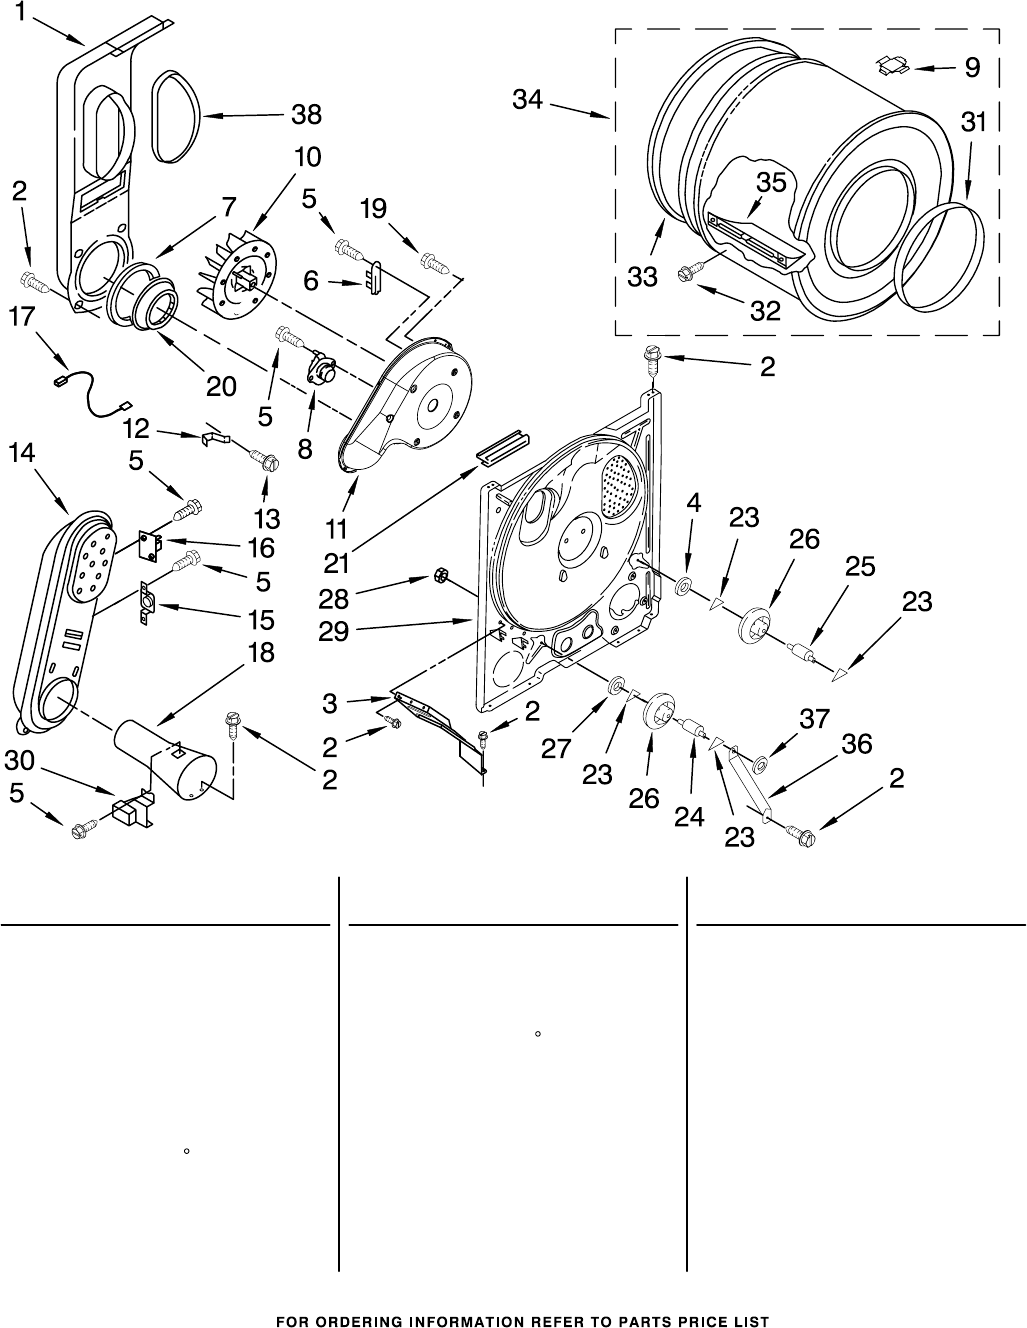 Page 7 of Whirlpool Clothes Dryer WGD5200TQ0 User Guide